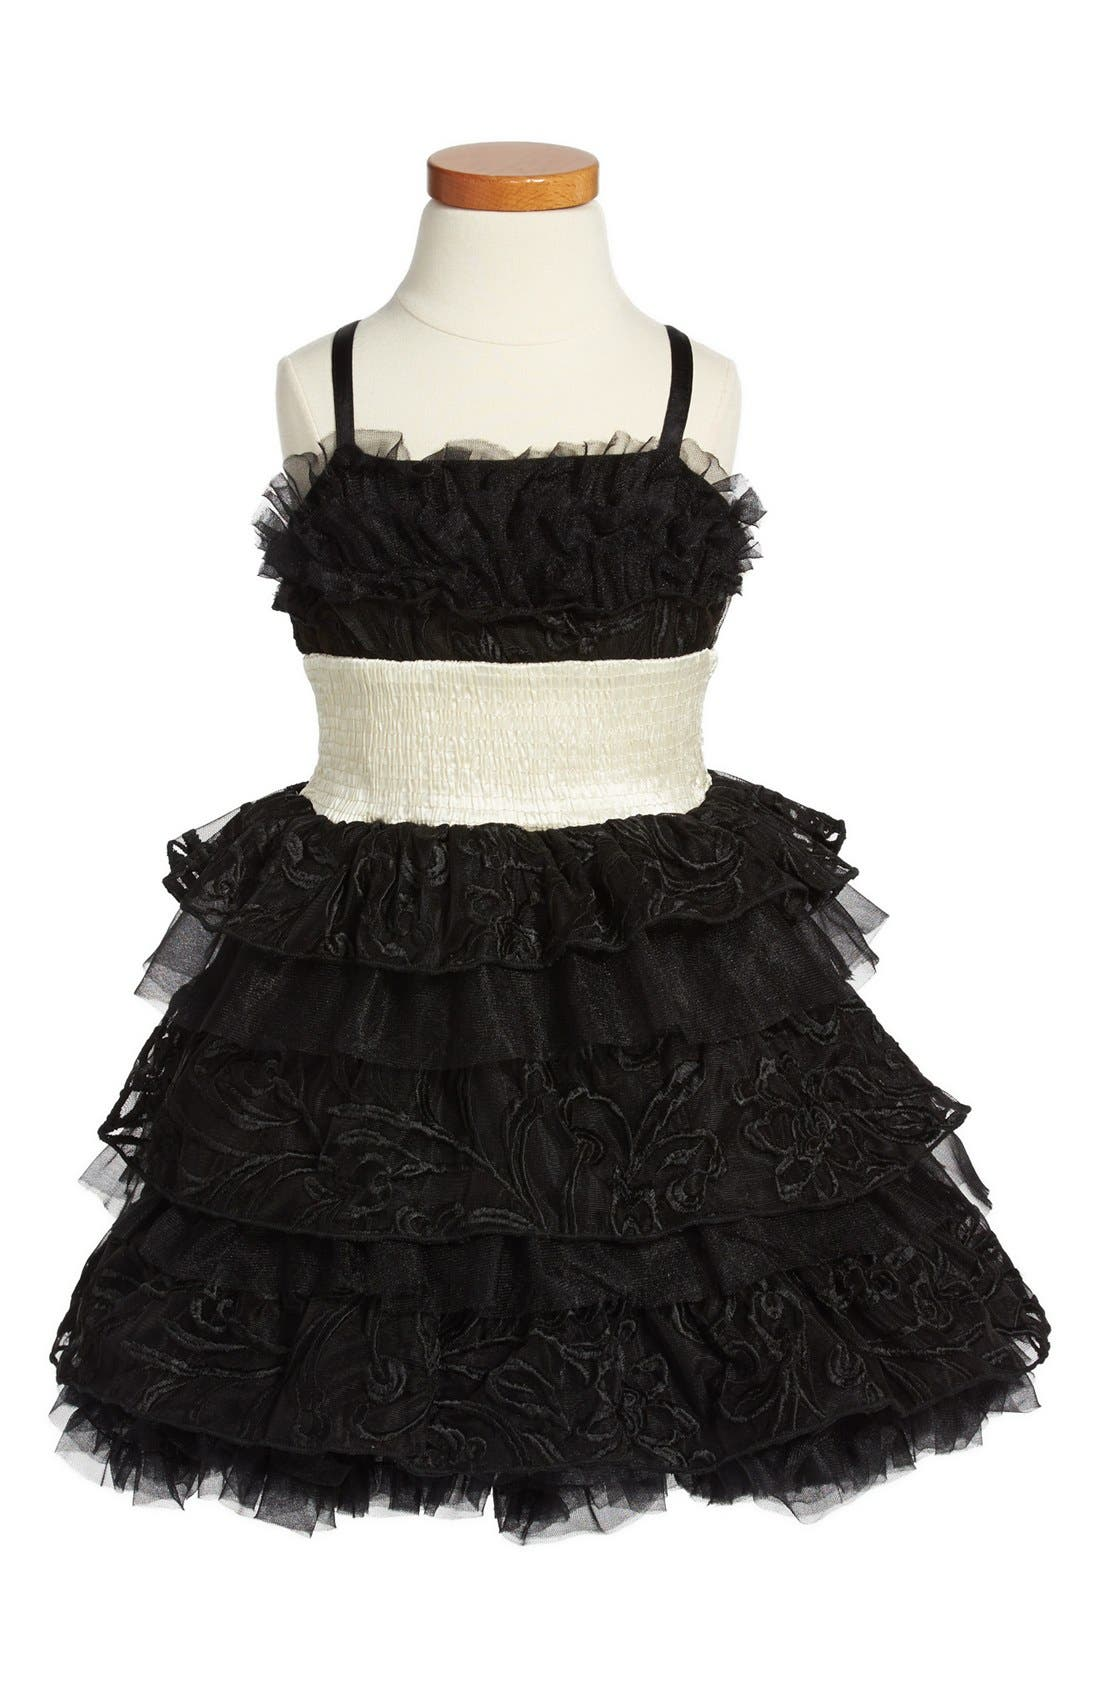 Alternate Image 1 Selected - Ooh! La, La! Couture 'Wow - Cake' Dress (Little Girls & Big Girls)